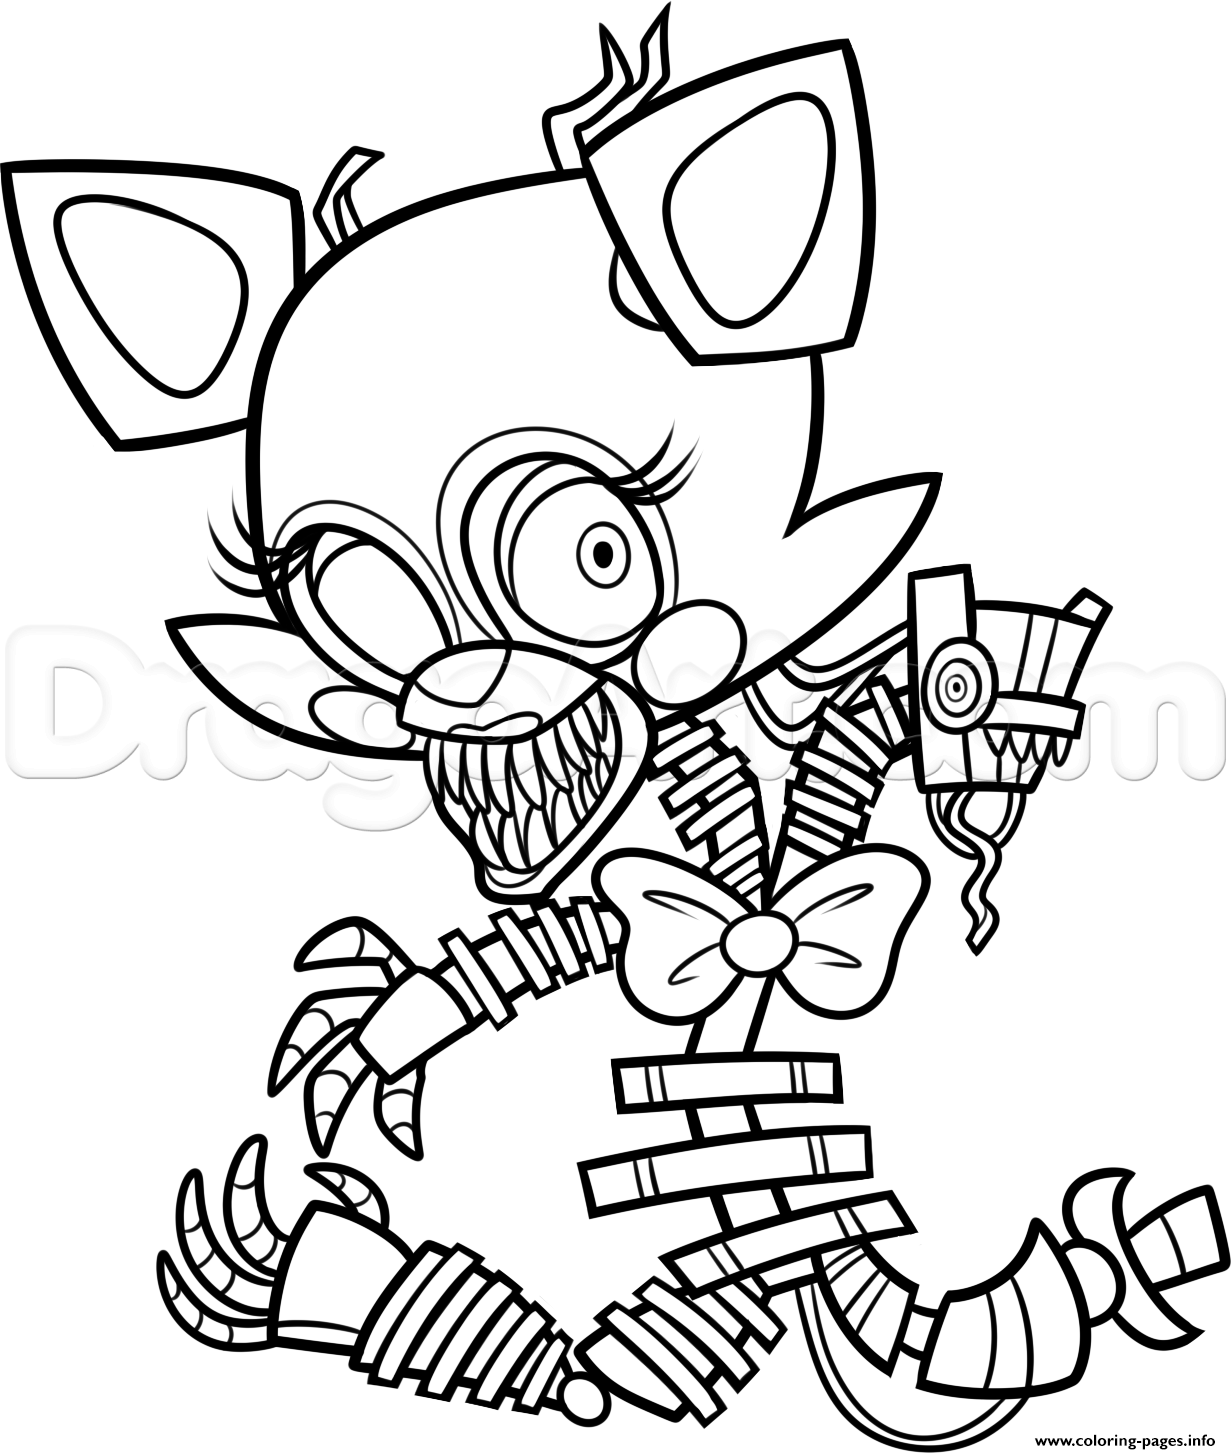 Five Nights At Freddys 2 Coloring Pages Coloring Pages